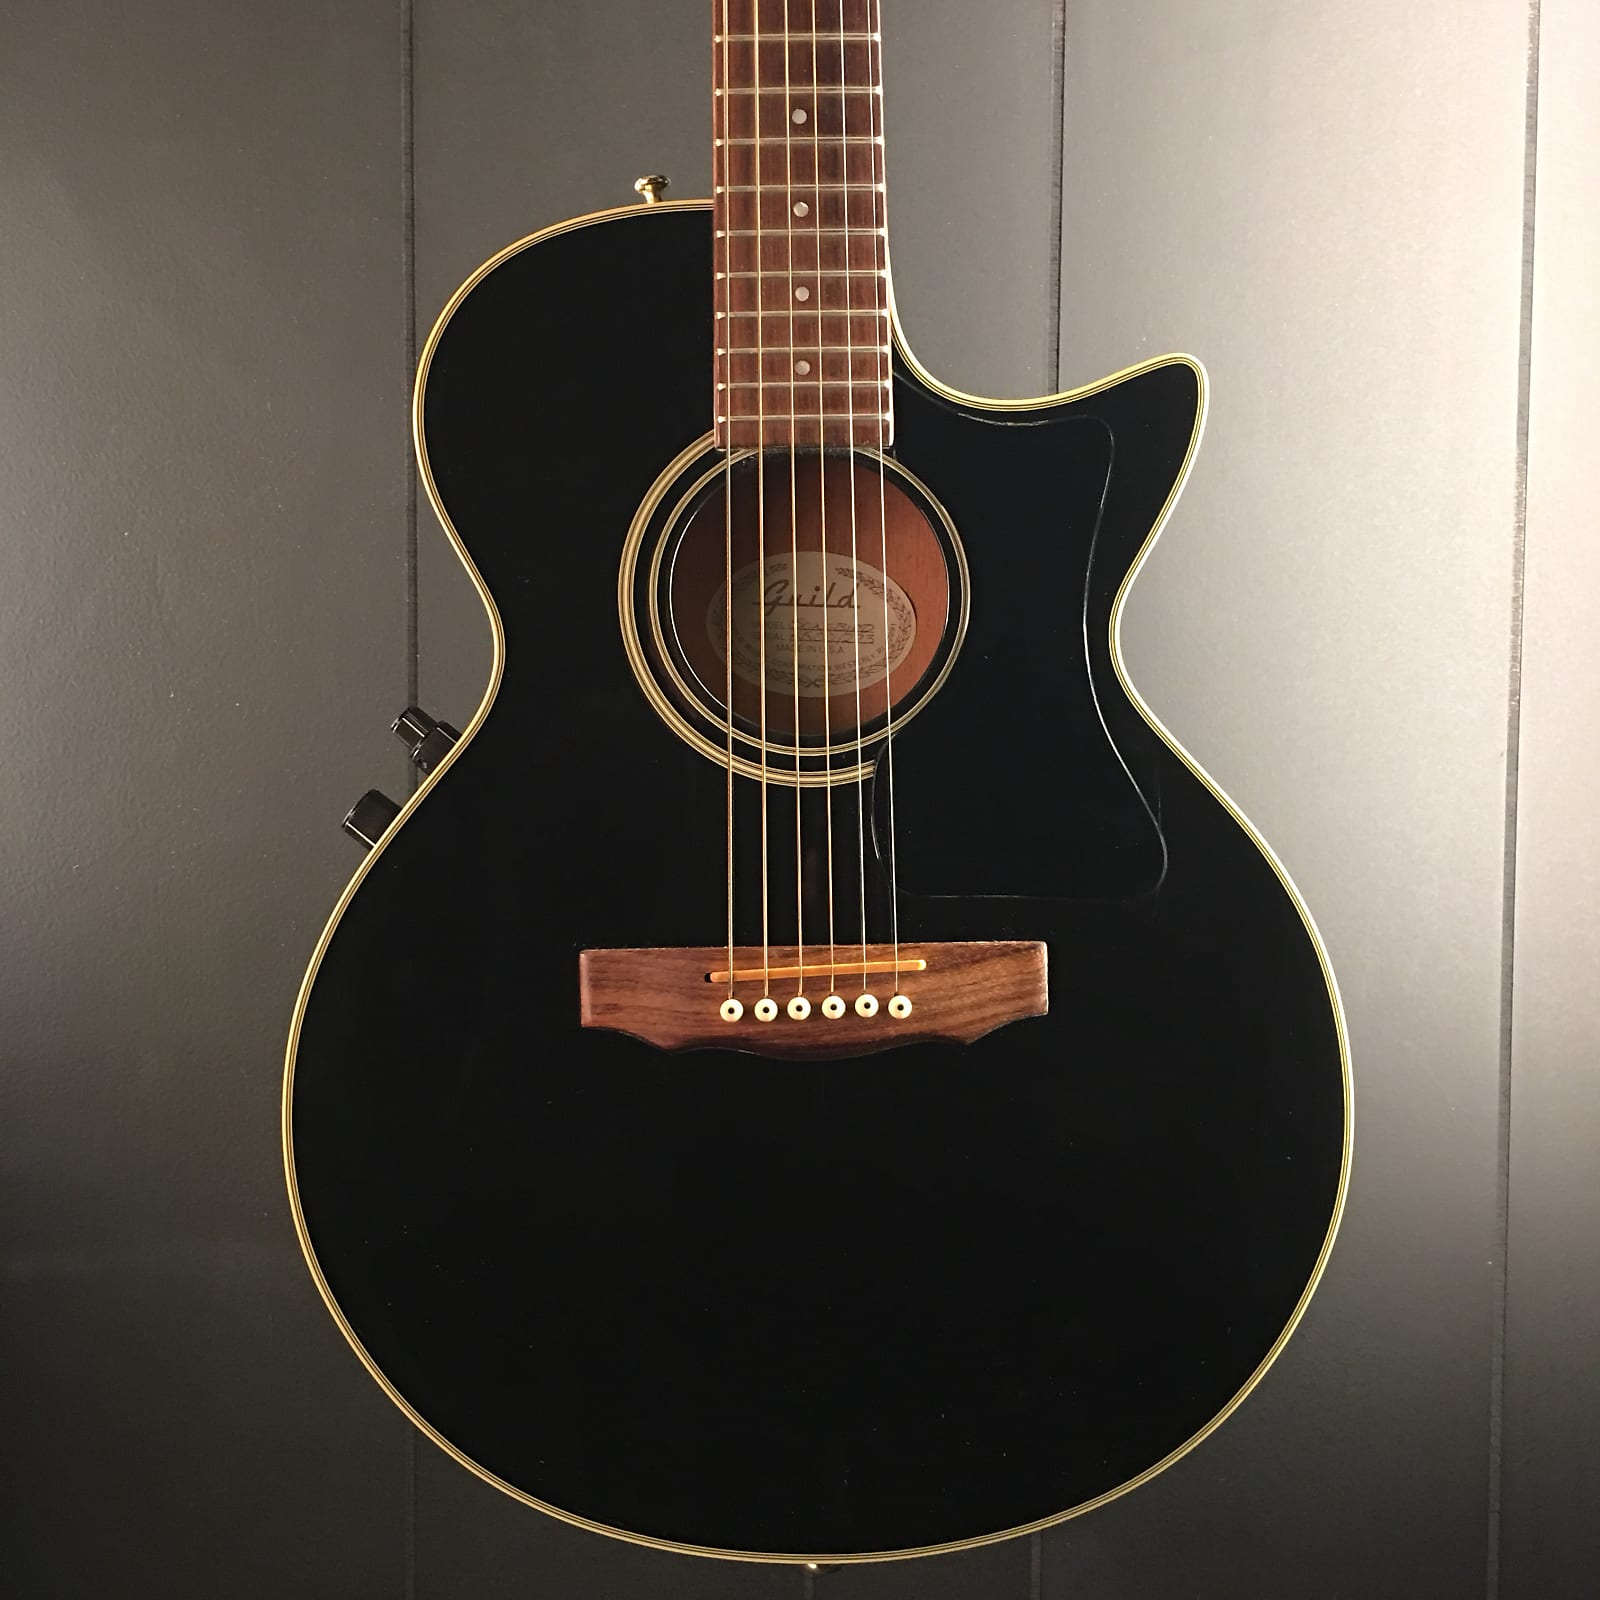 guild songbird acoustic electric guitar 1990 made in usa free shipping. Black Bedroom Furniture Sets. Home Design Ideas